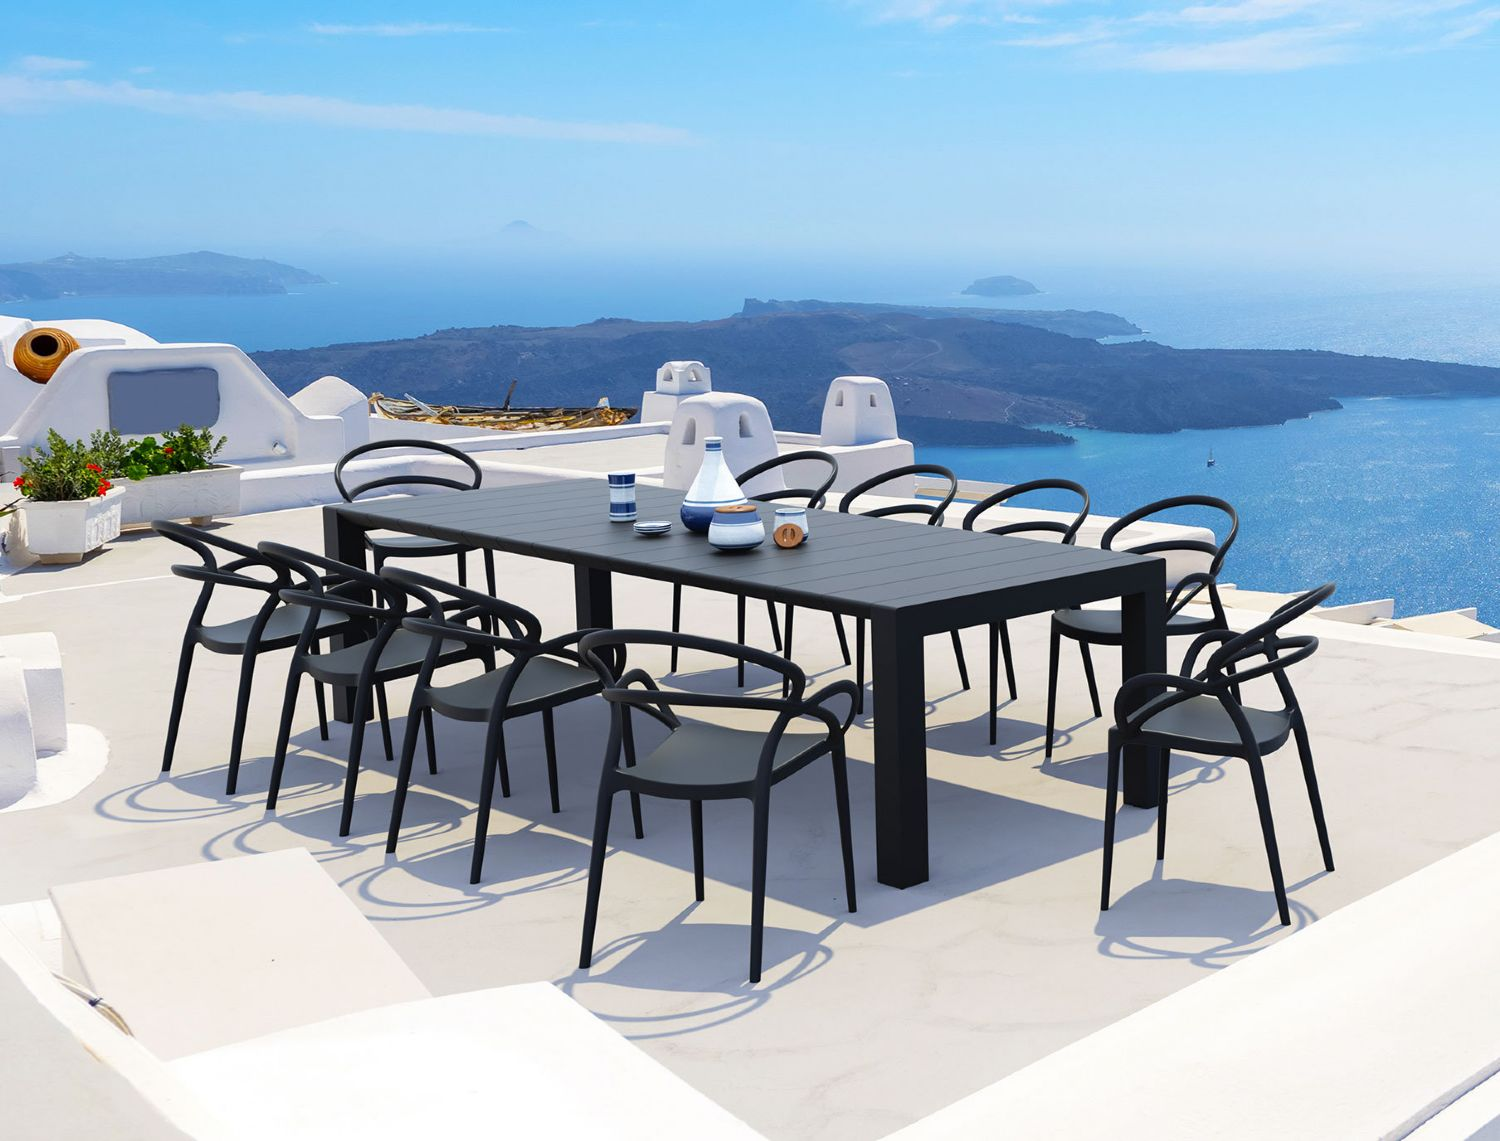 Vegas Outdoor Dining Table Extendable from 102 to 118 inch Dark Gray ISP776-DG - 1